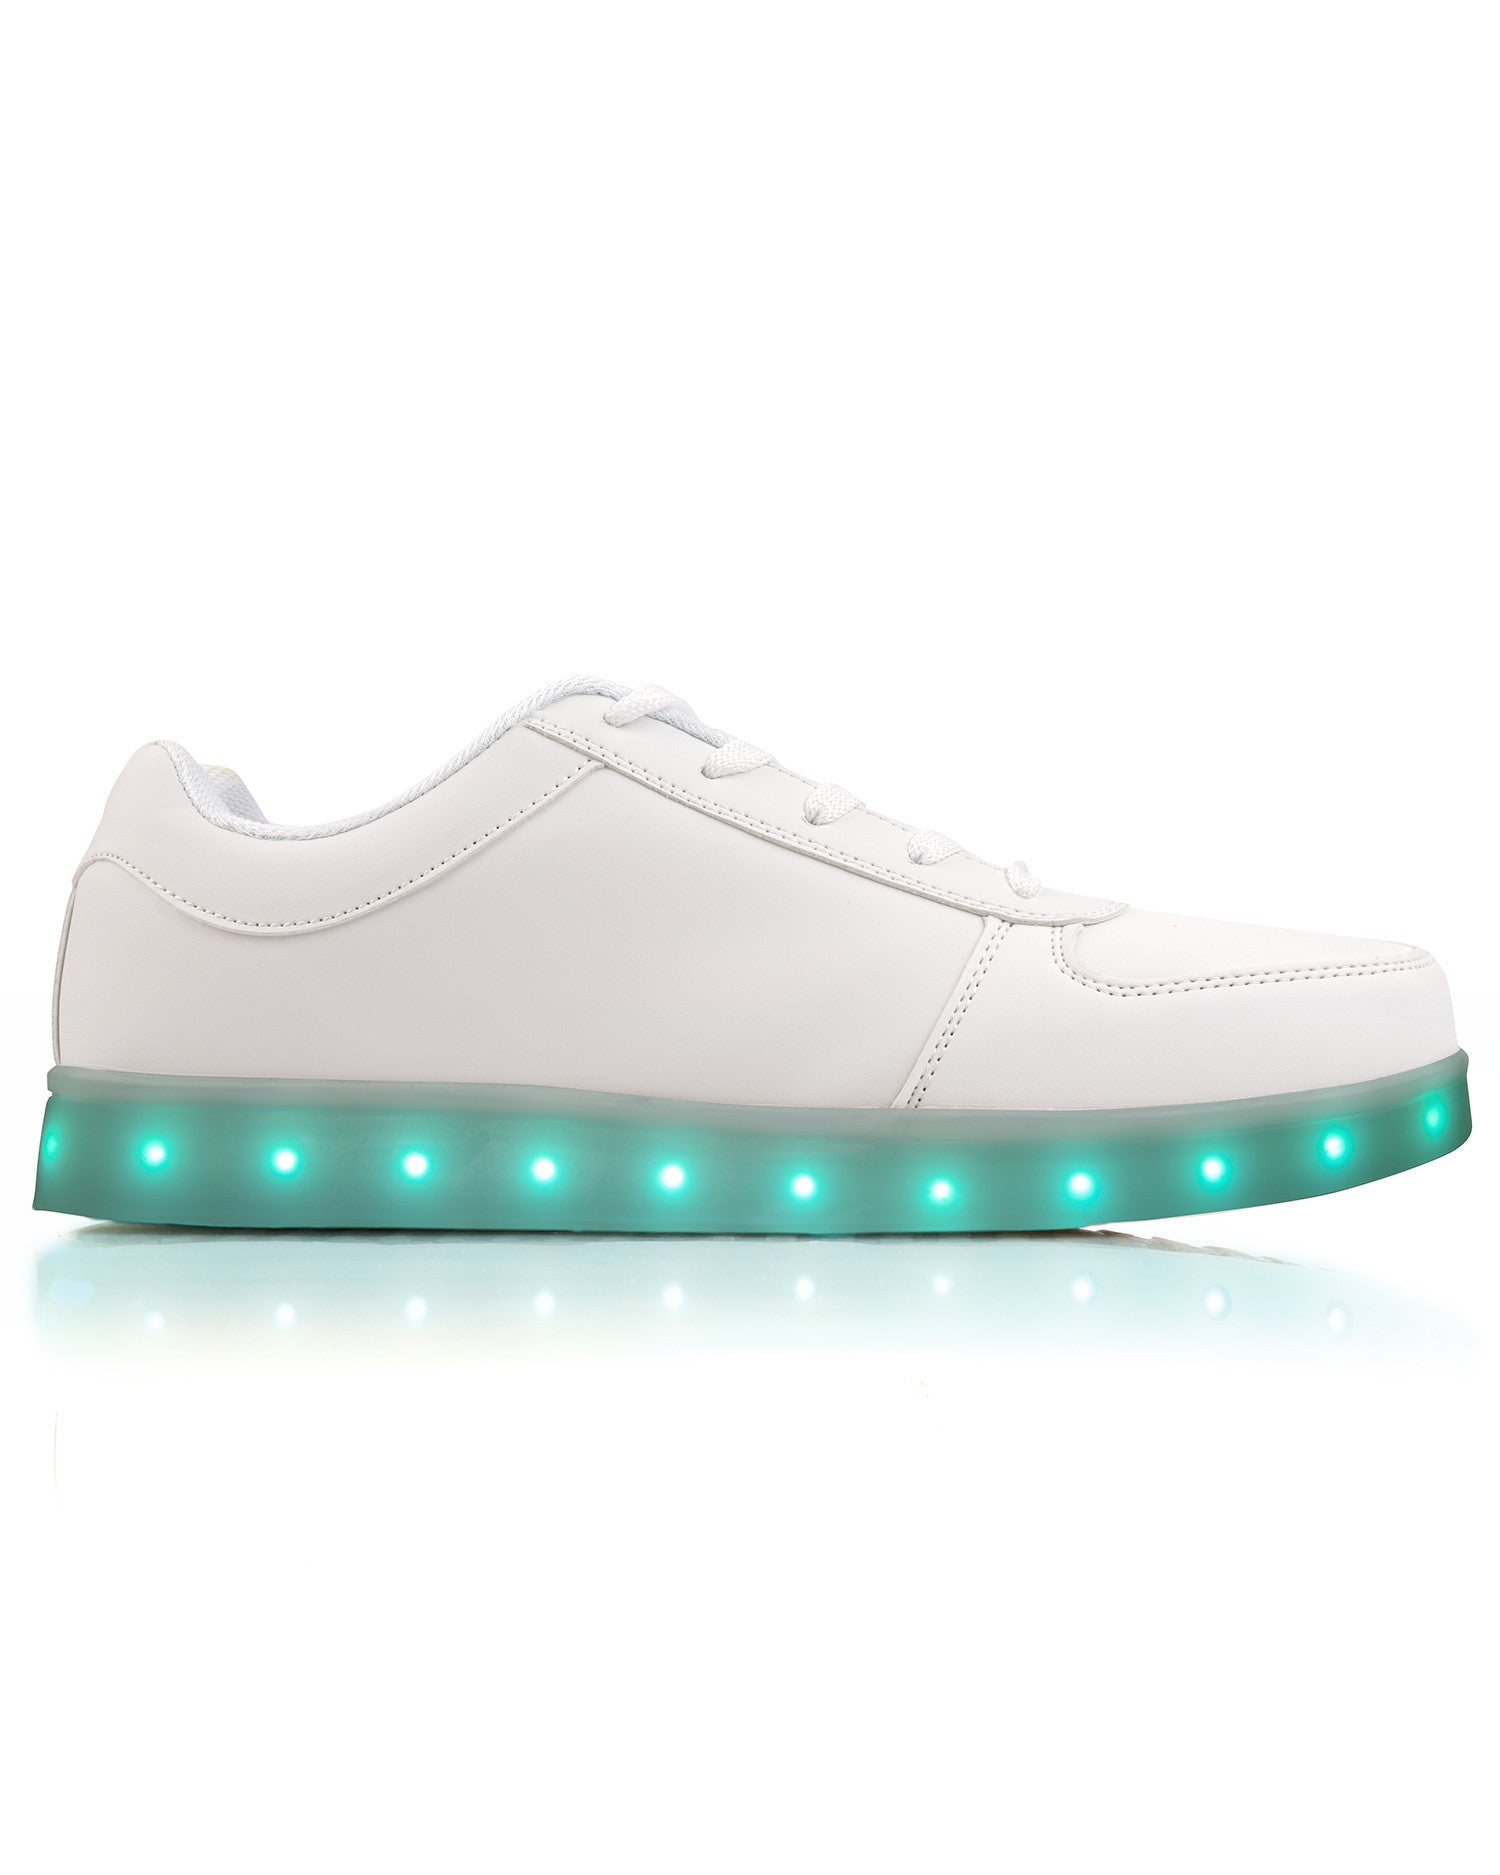 Electric Shoes - The Original - Electric Styles | World's Number 1 Light Up Shoe Store - {product_type}} - White / Men's 8 - 1